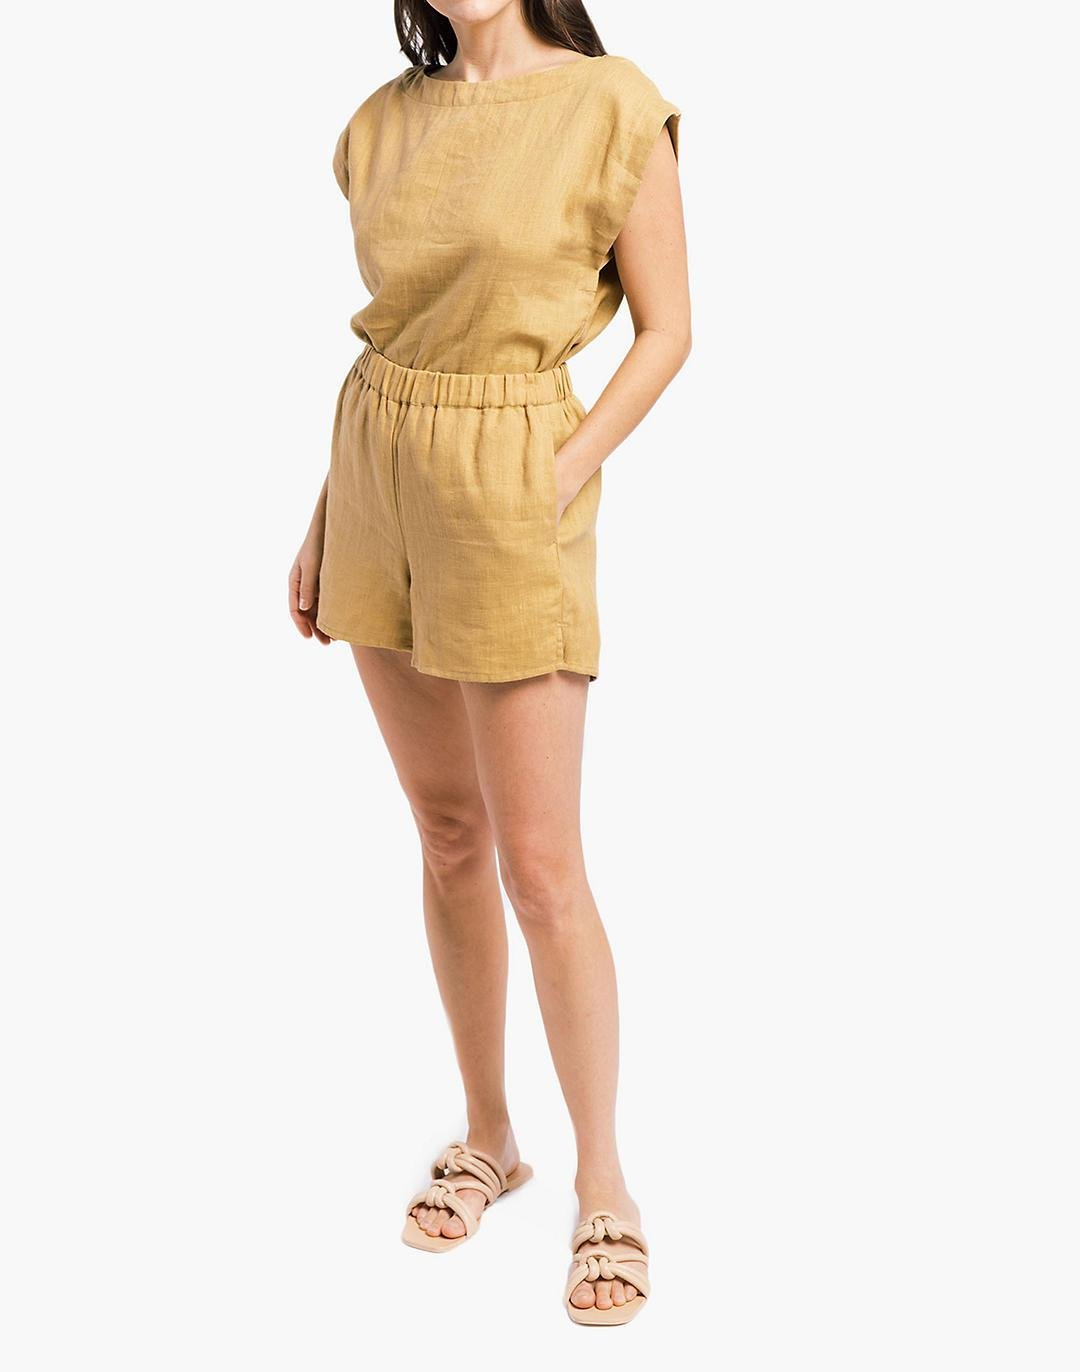 LAUDE the Label Everyday Short